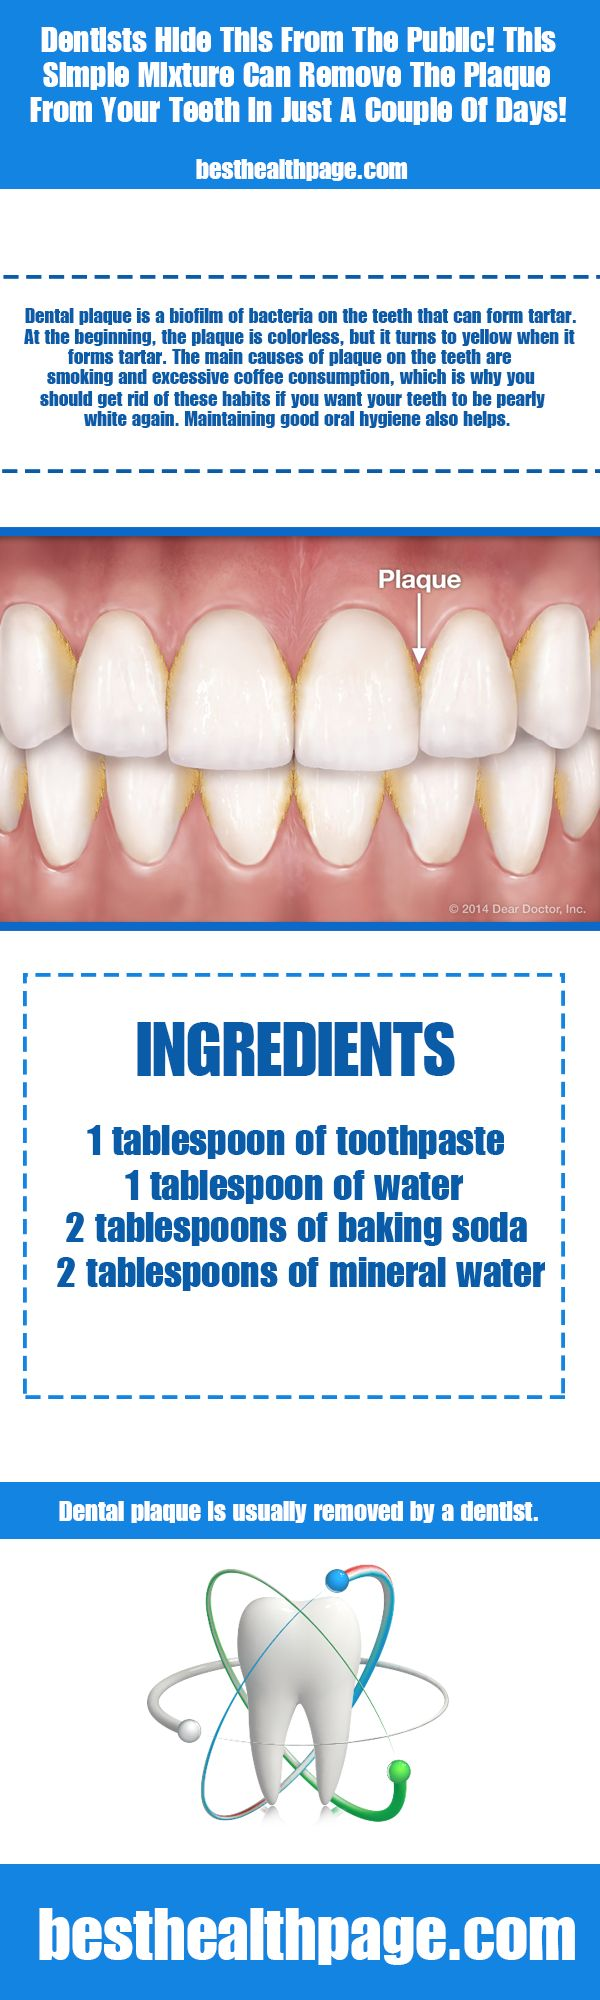 Dentists Hide This From The Public! This Simple Mixture Can Remove The Plaque From Your Teeth In Just A Couple Of Days! - Best Health Page